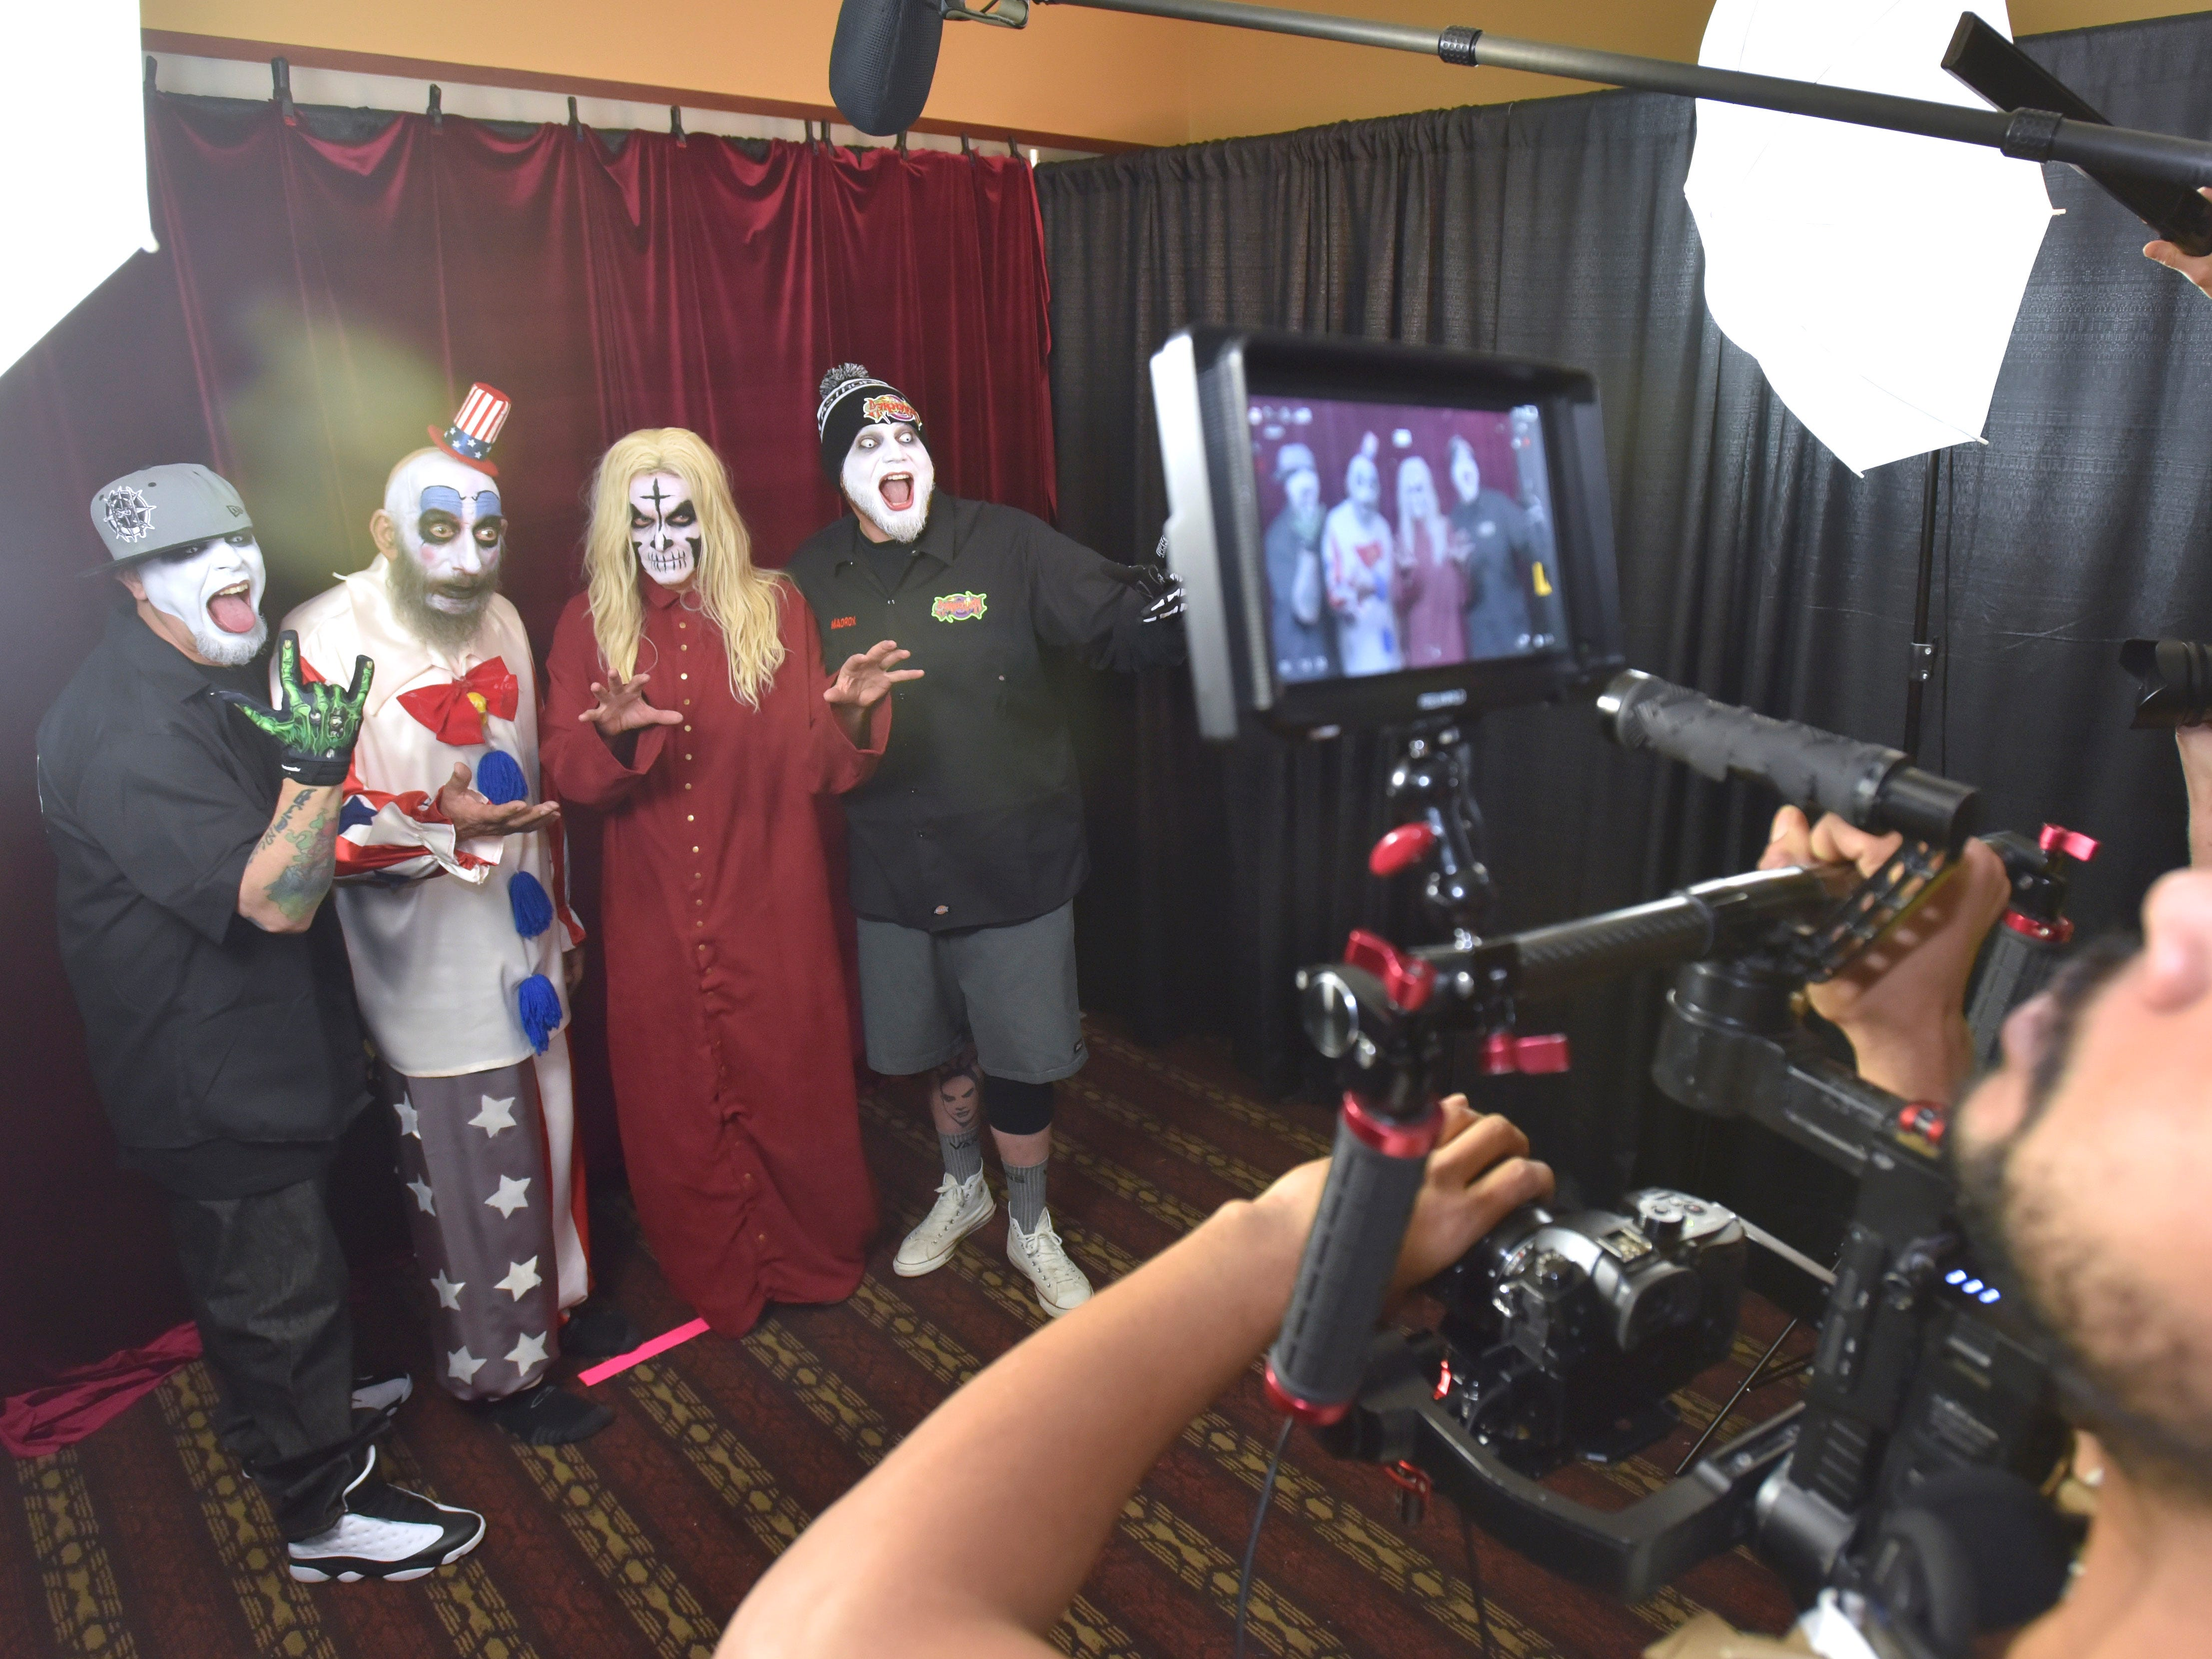 Rob Zombie's slasher / horror movie House of 1000 Corpses characters 'Captain Spaulding,' center-left, portrayed by Sid Haig, and 'Otis B. Driftwood,' center-right, portrayed by Bill Moseley, pose with Detroit recording artists Monoxide, left, and Jamie Madrox, right, from Twiztid at the Hollywood Photo Ops portrait booth.